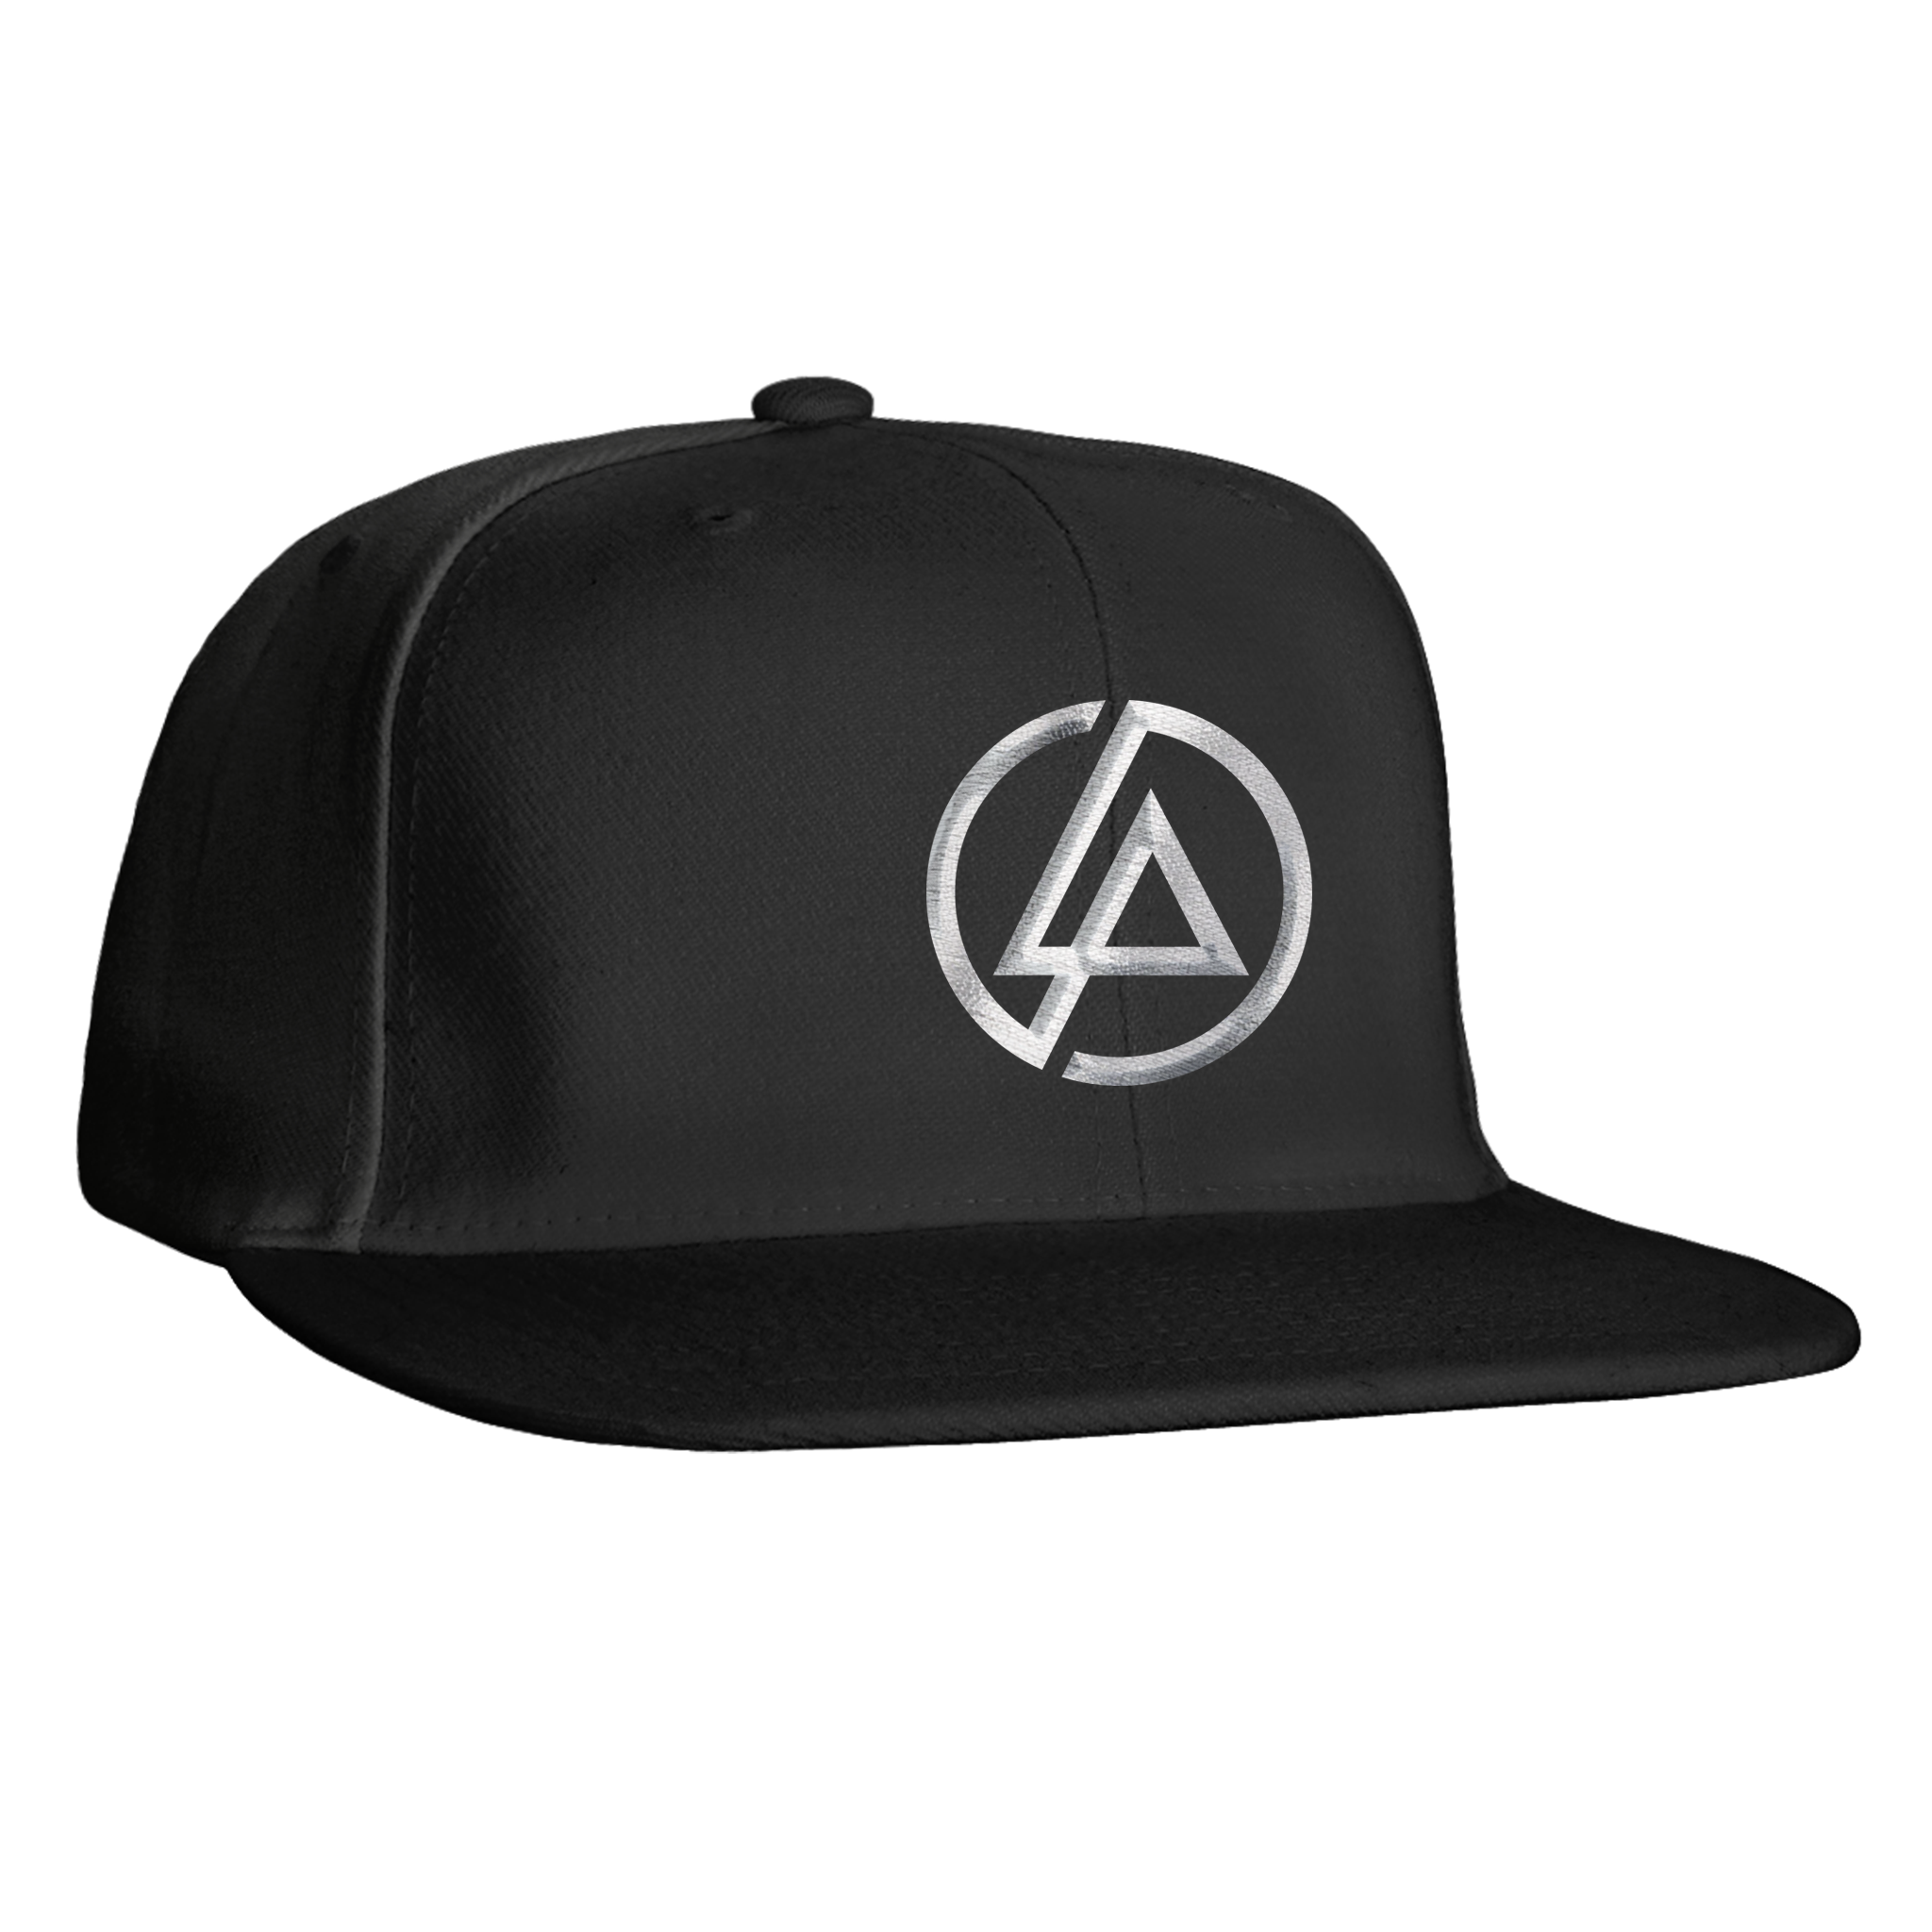 LIP065A_LIVING_THINGS_HAT_FRT_2048x2048.png?v\u003d1530206400 Living Things Snapback Hat | Headwear Linkin Park Store